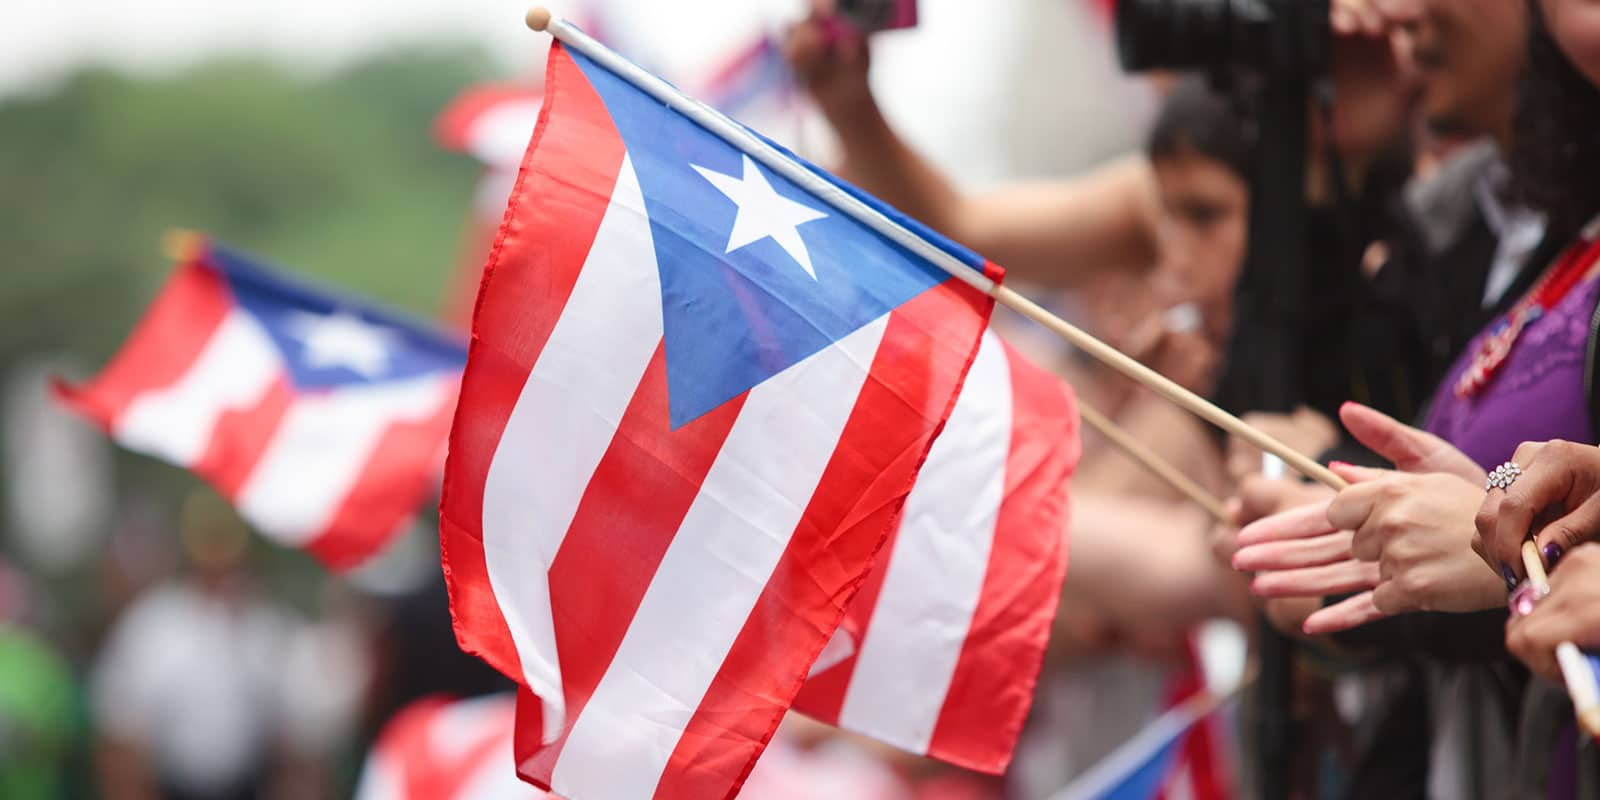 Artists unite on the National Puerto Rican Day